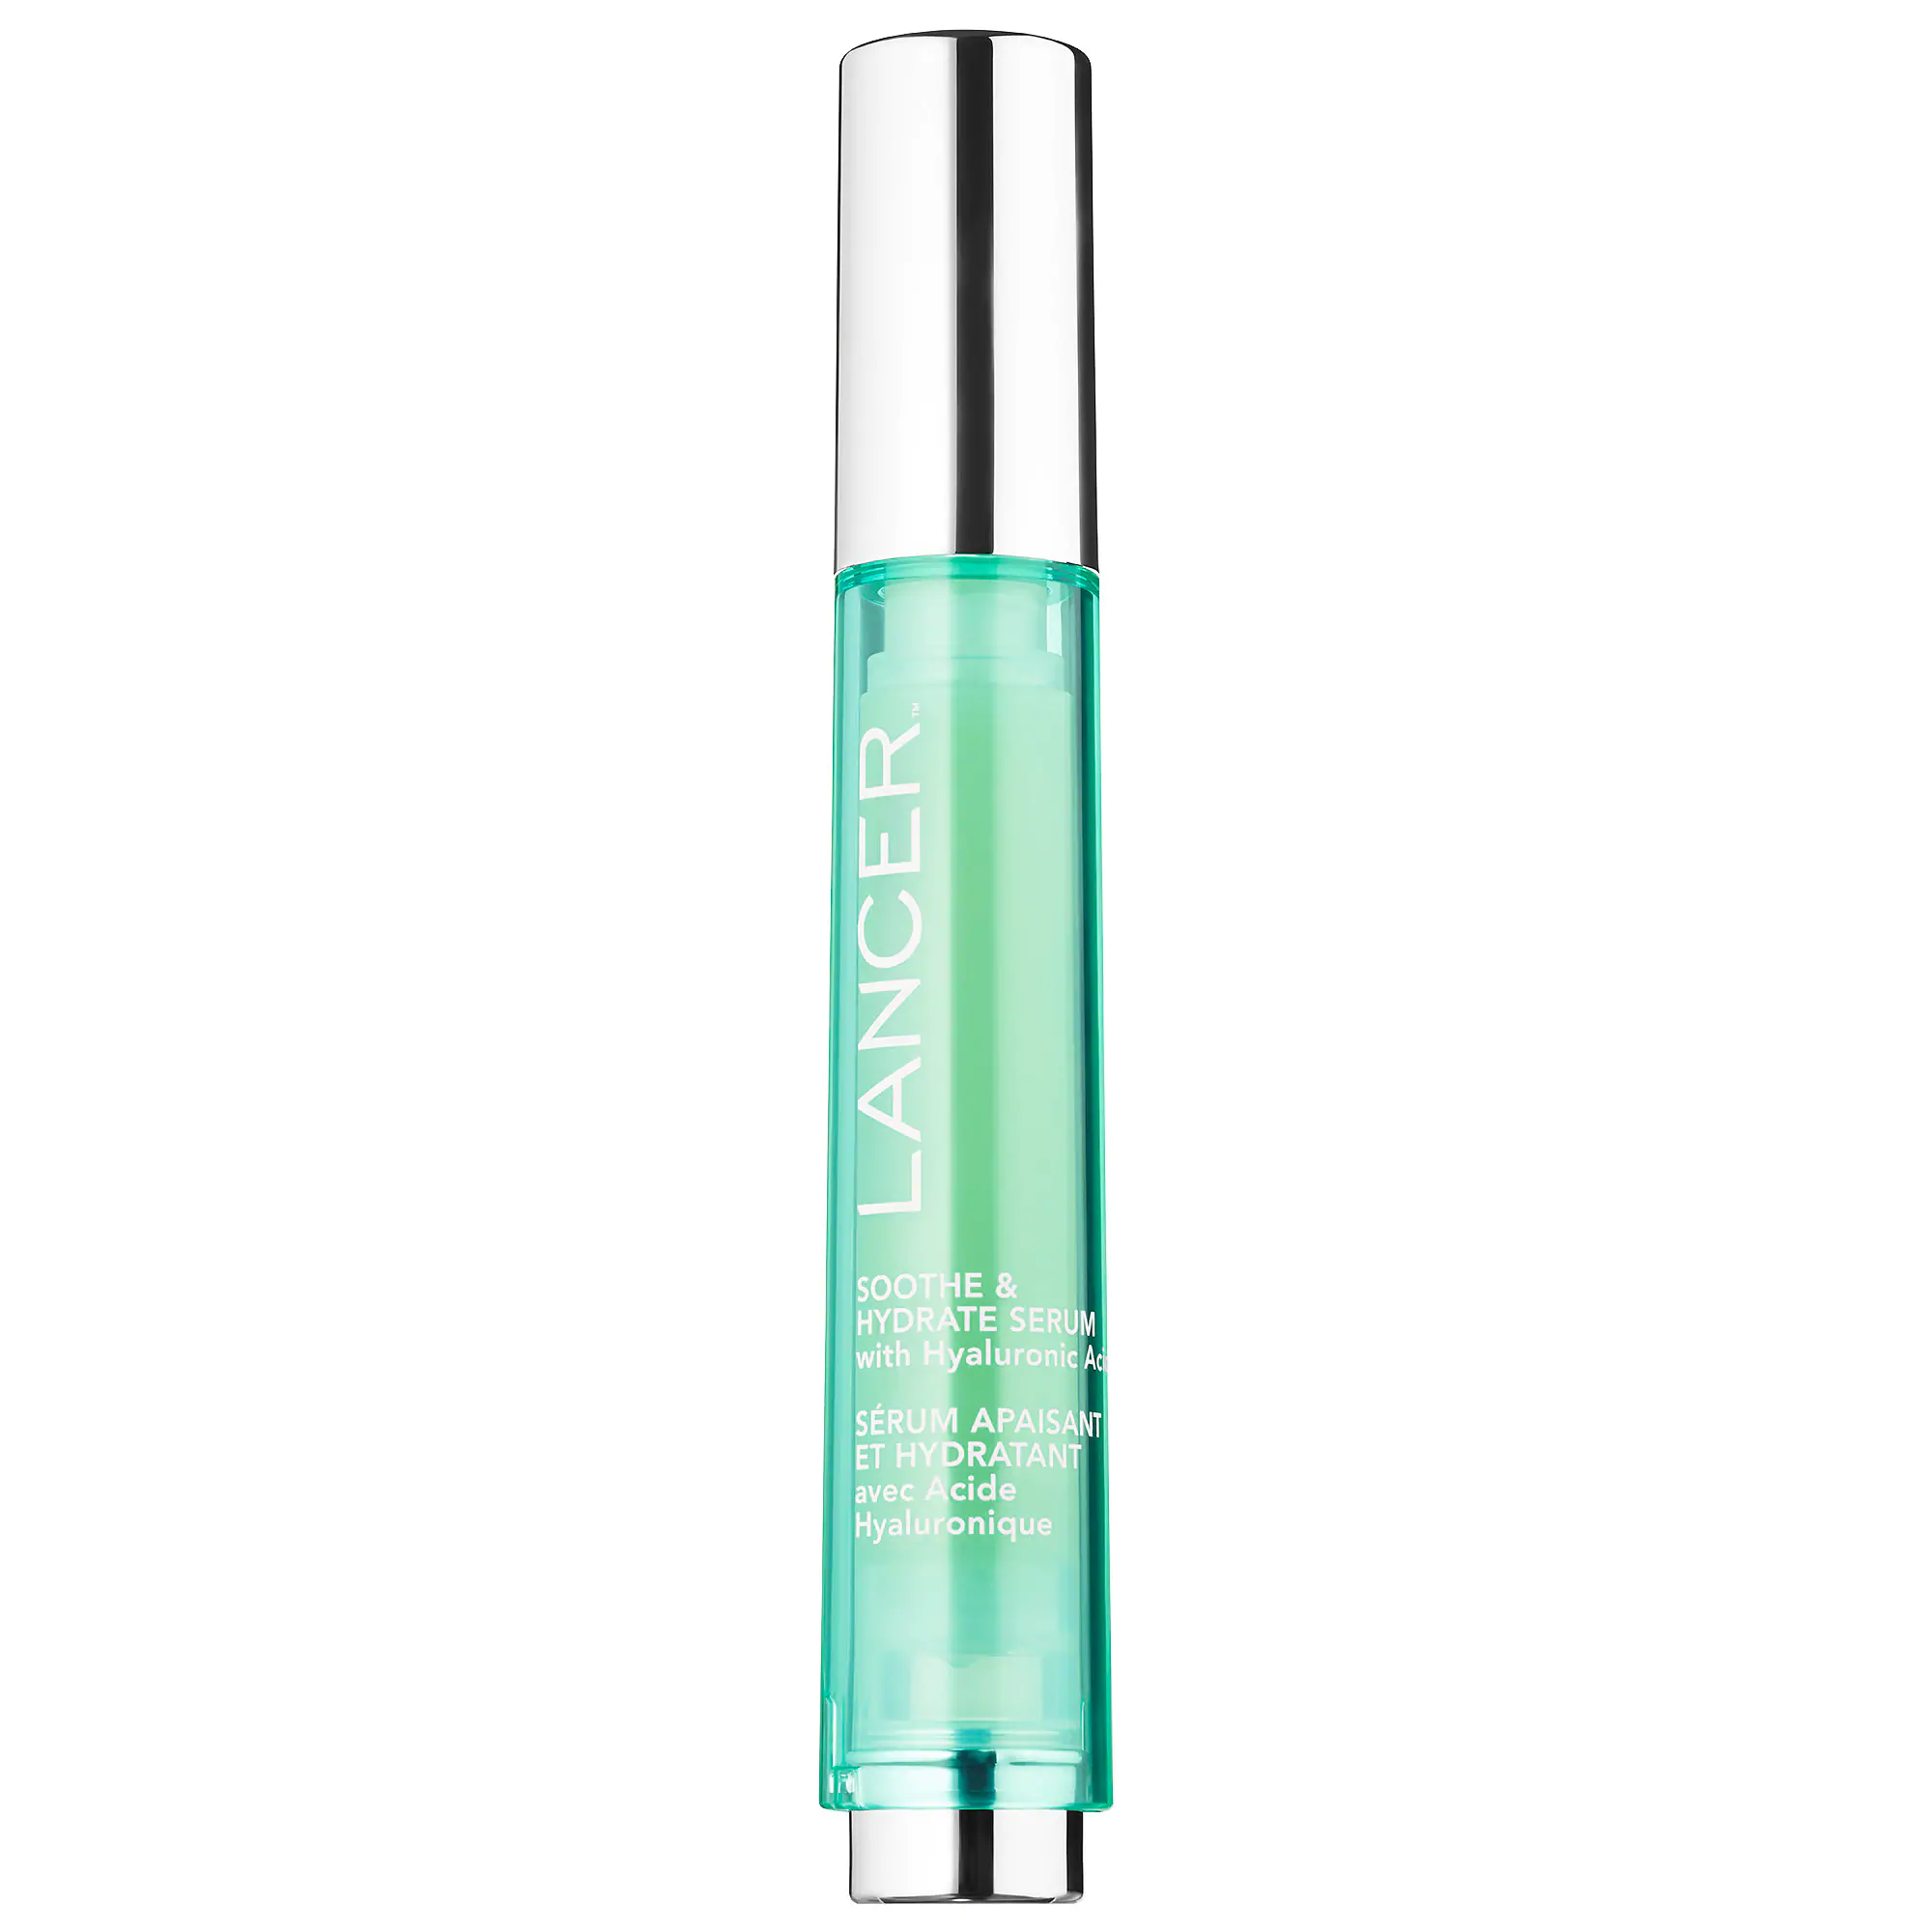 Lancer Soothe & Hydrate Serum With Hyaluronic Acid